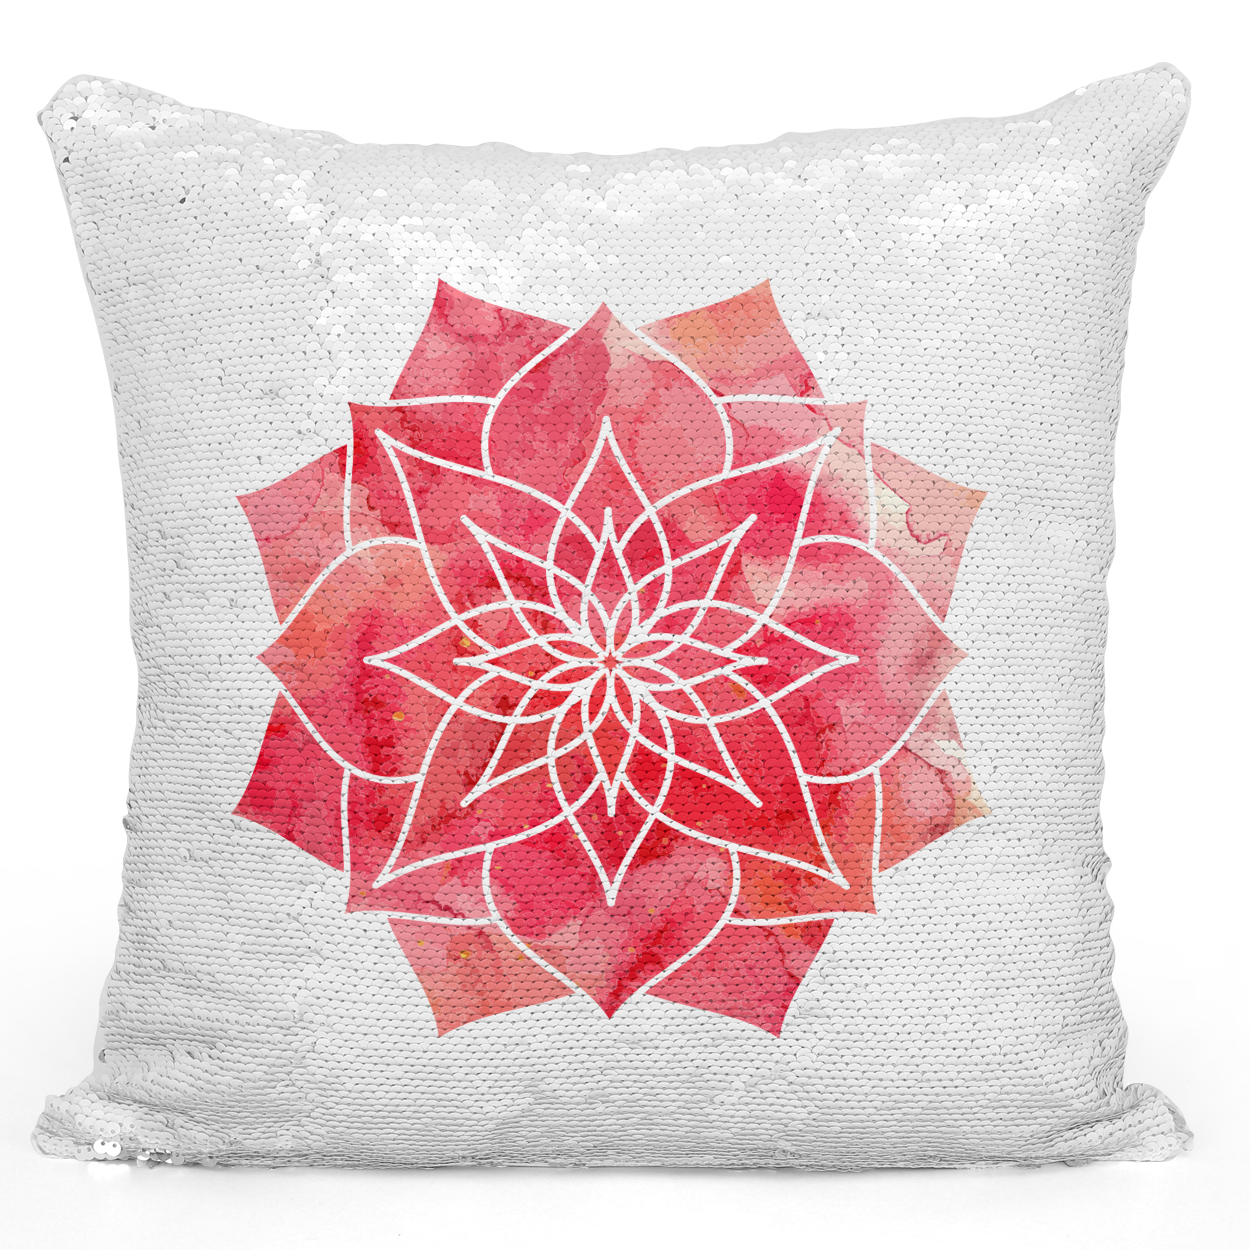 Sequin Pillow Magic Mermaid Throw Pillow Watercolor Boho Madala Pillow - Durable White 16 x 16 inch Square Livingroom Sofa Couch Pillow Loud Universe